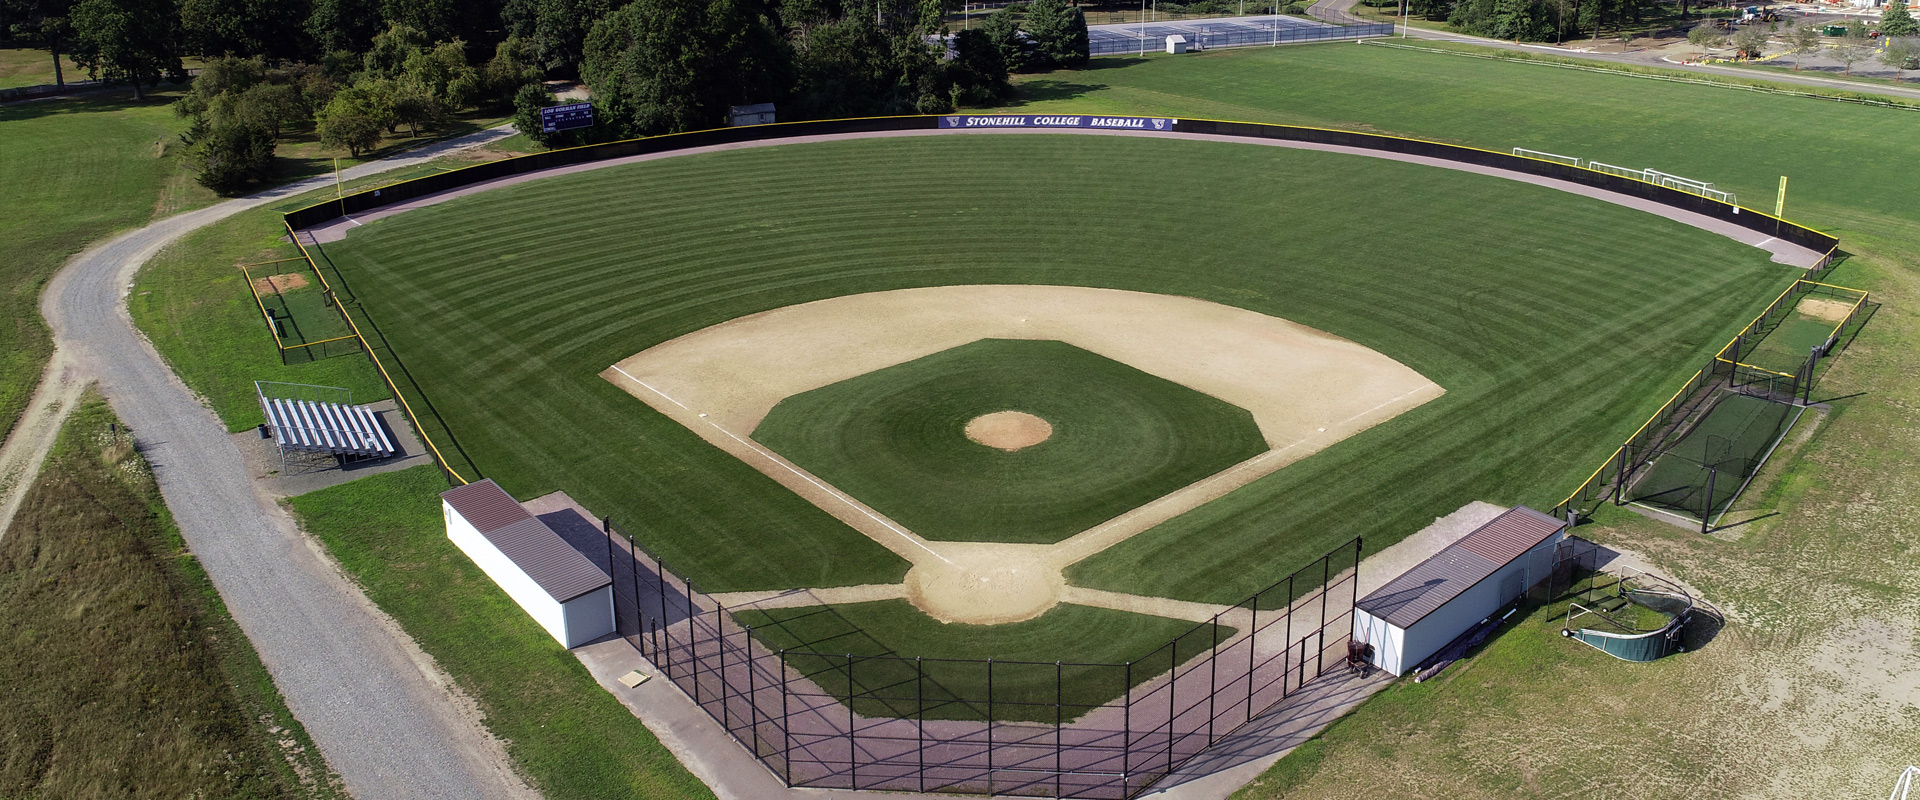 Lou Gorman Baseball Field at Stonehill College